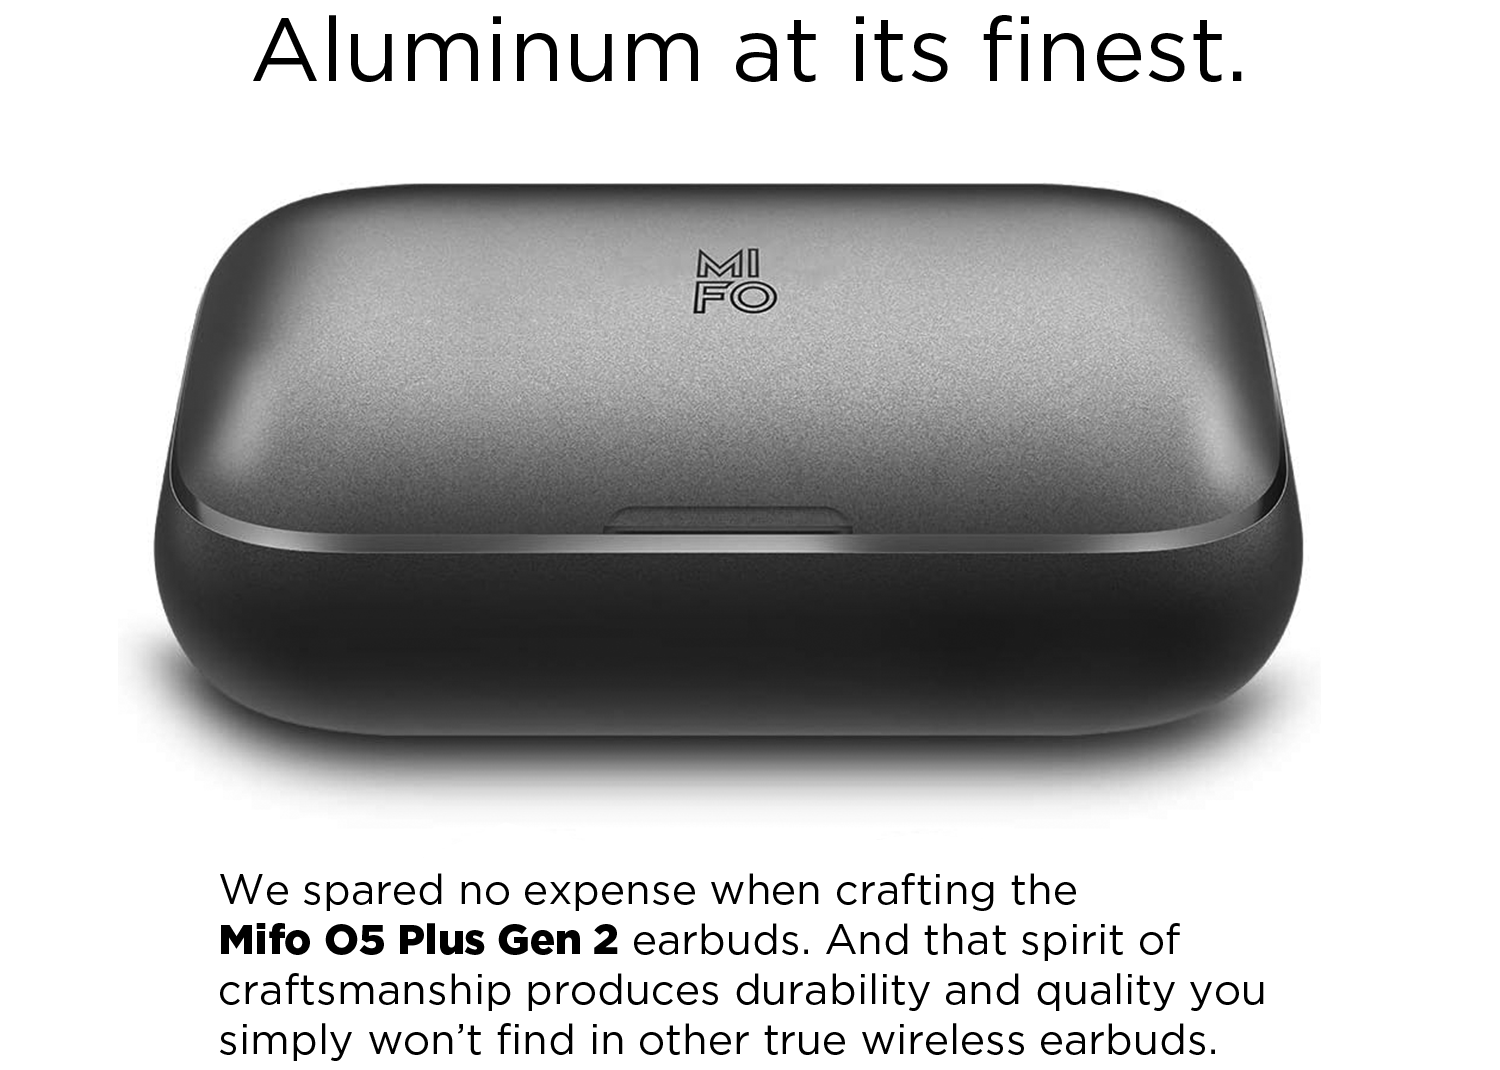 Mifo O5 Plus Gen 2 Earbuds Charging Case